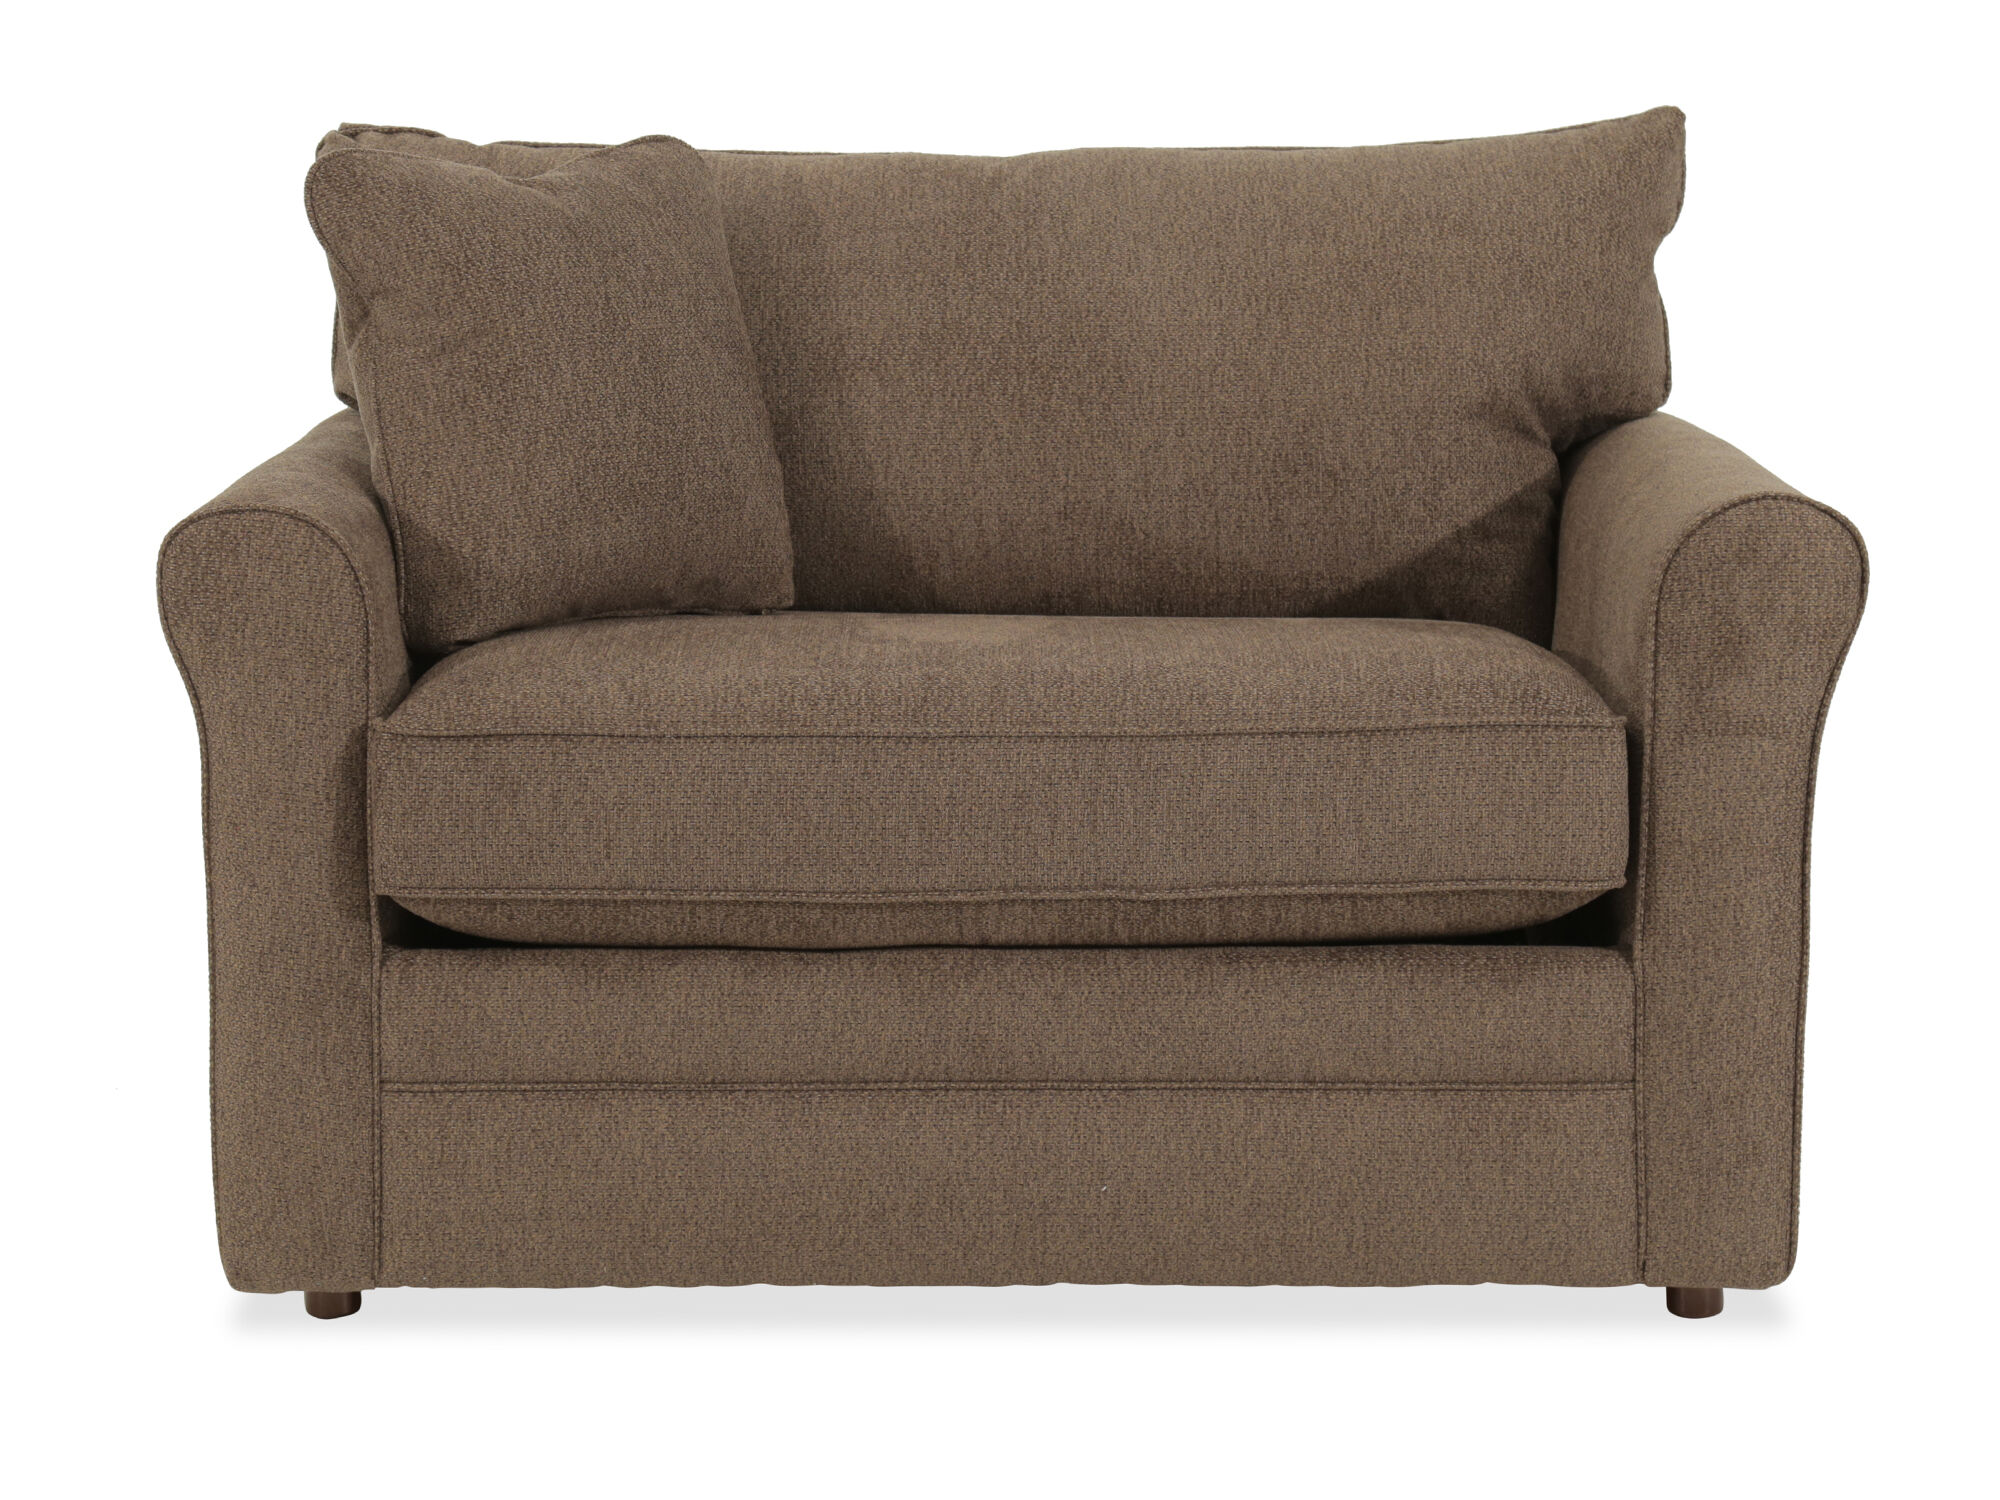 Roll Arm Casual 54u0026quot; Twin Sleep Chair ...  sc 1 st  Mathis Brothers & Sofa Beds u0026 Sleepers | Mathis Brothers Furniture Stores